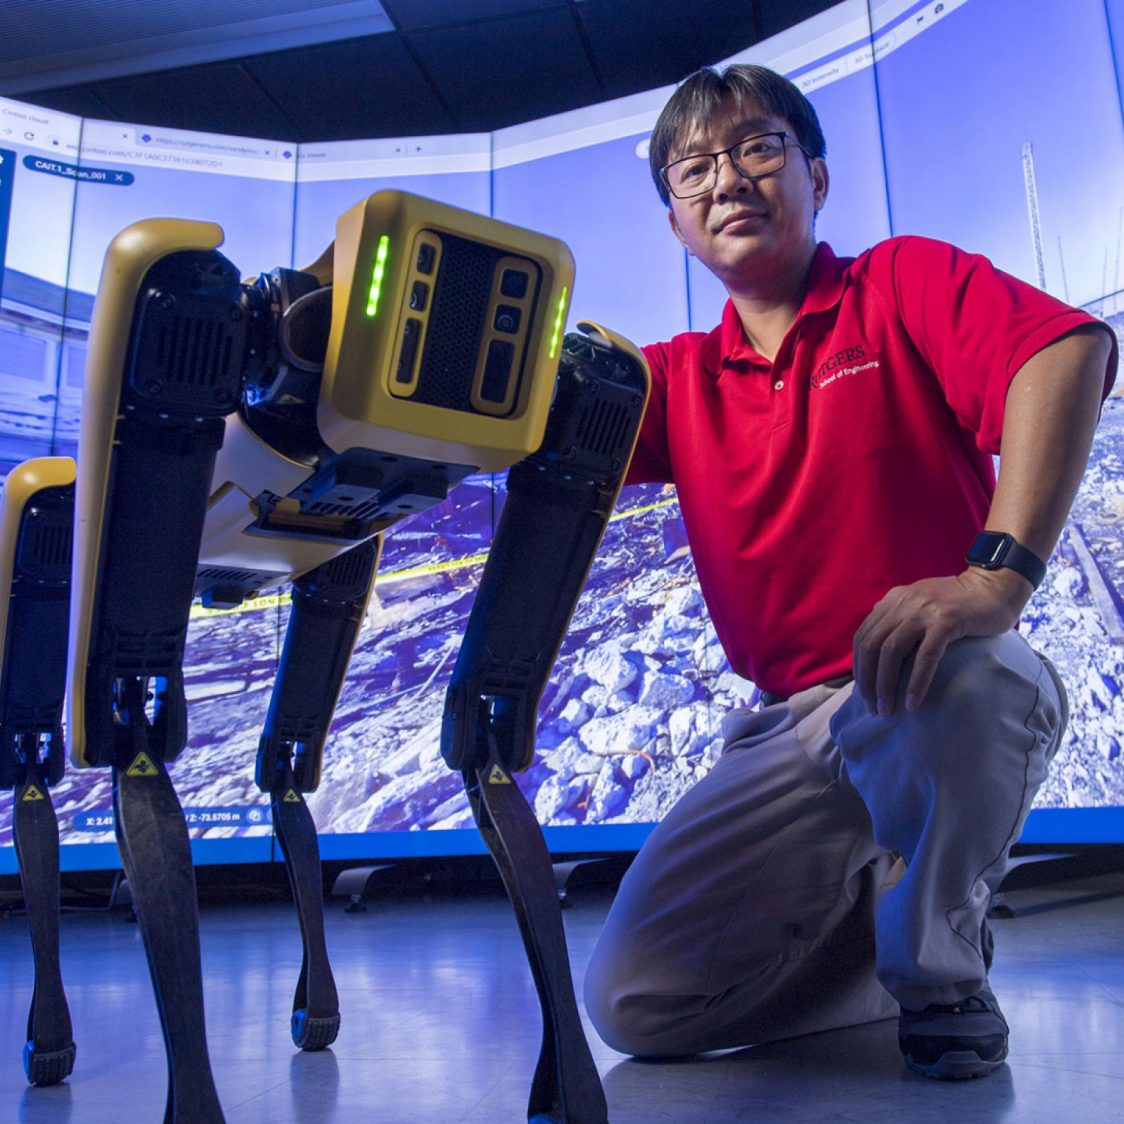 Jie Gong and his Robot